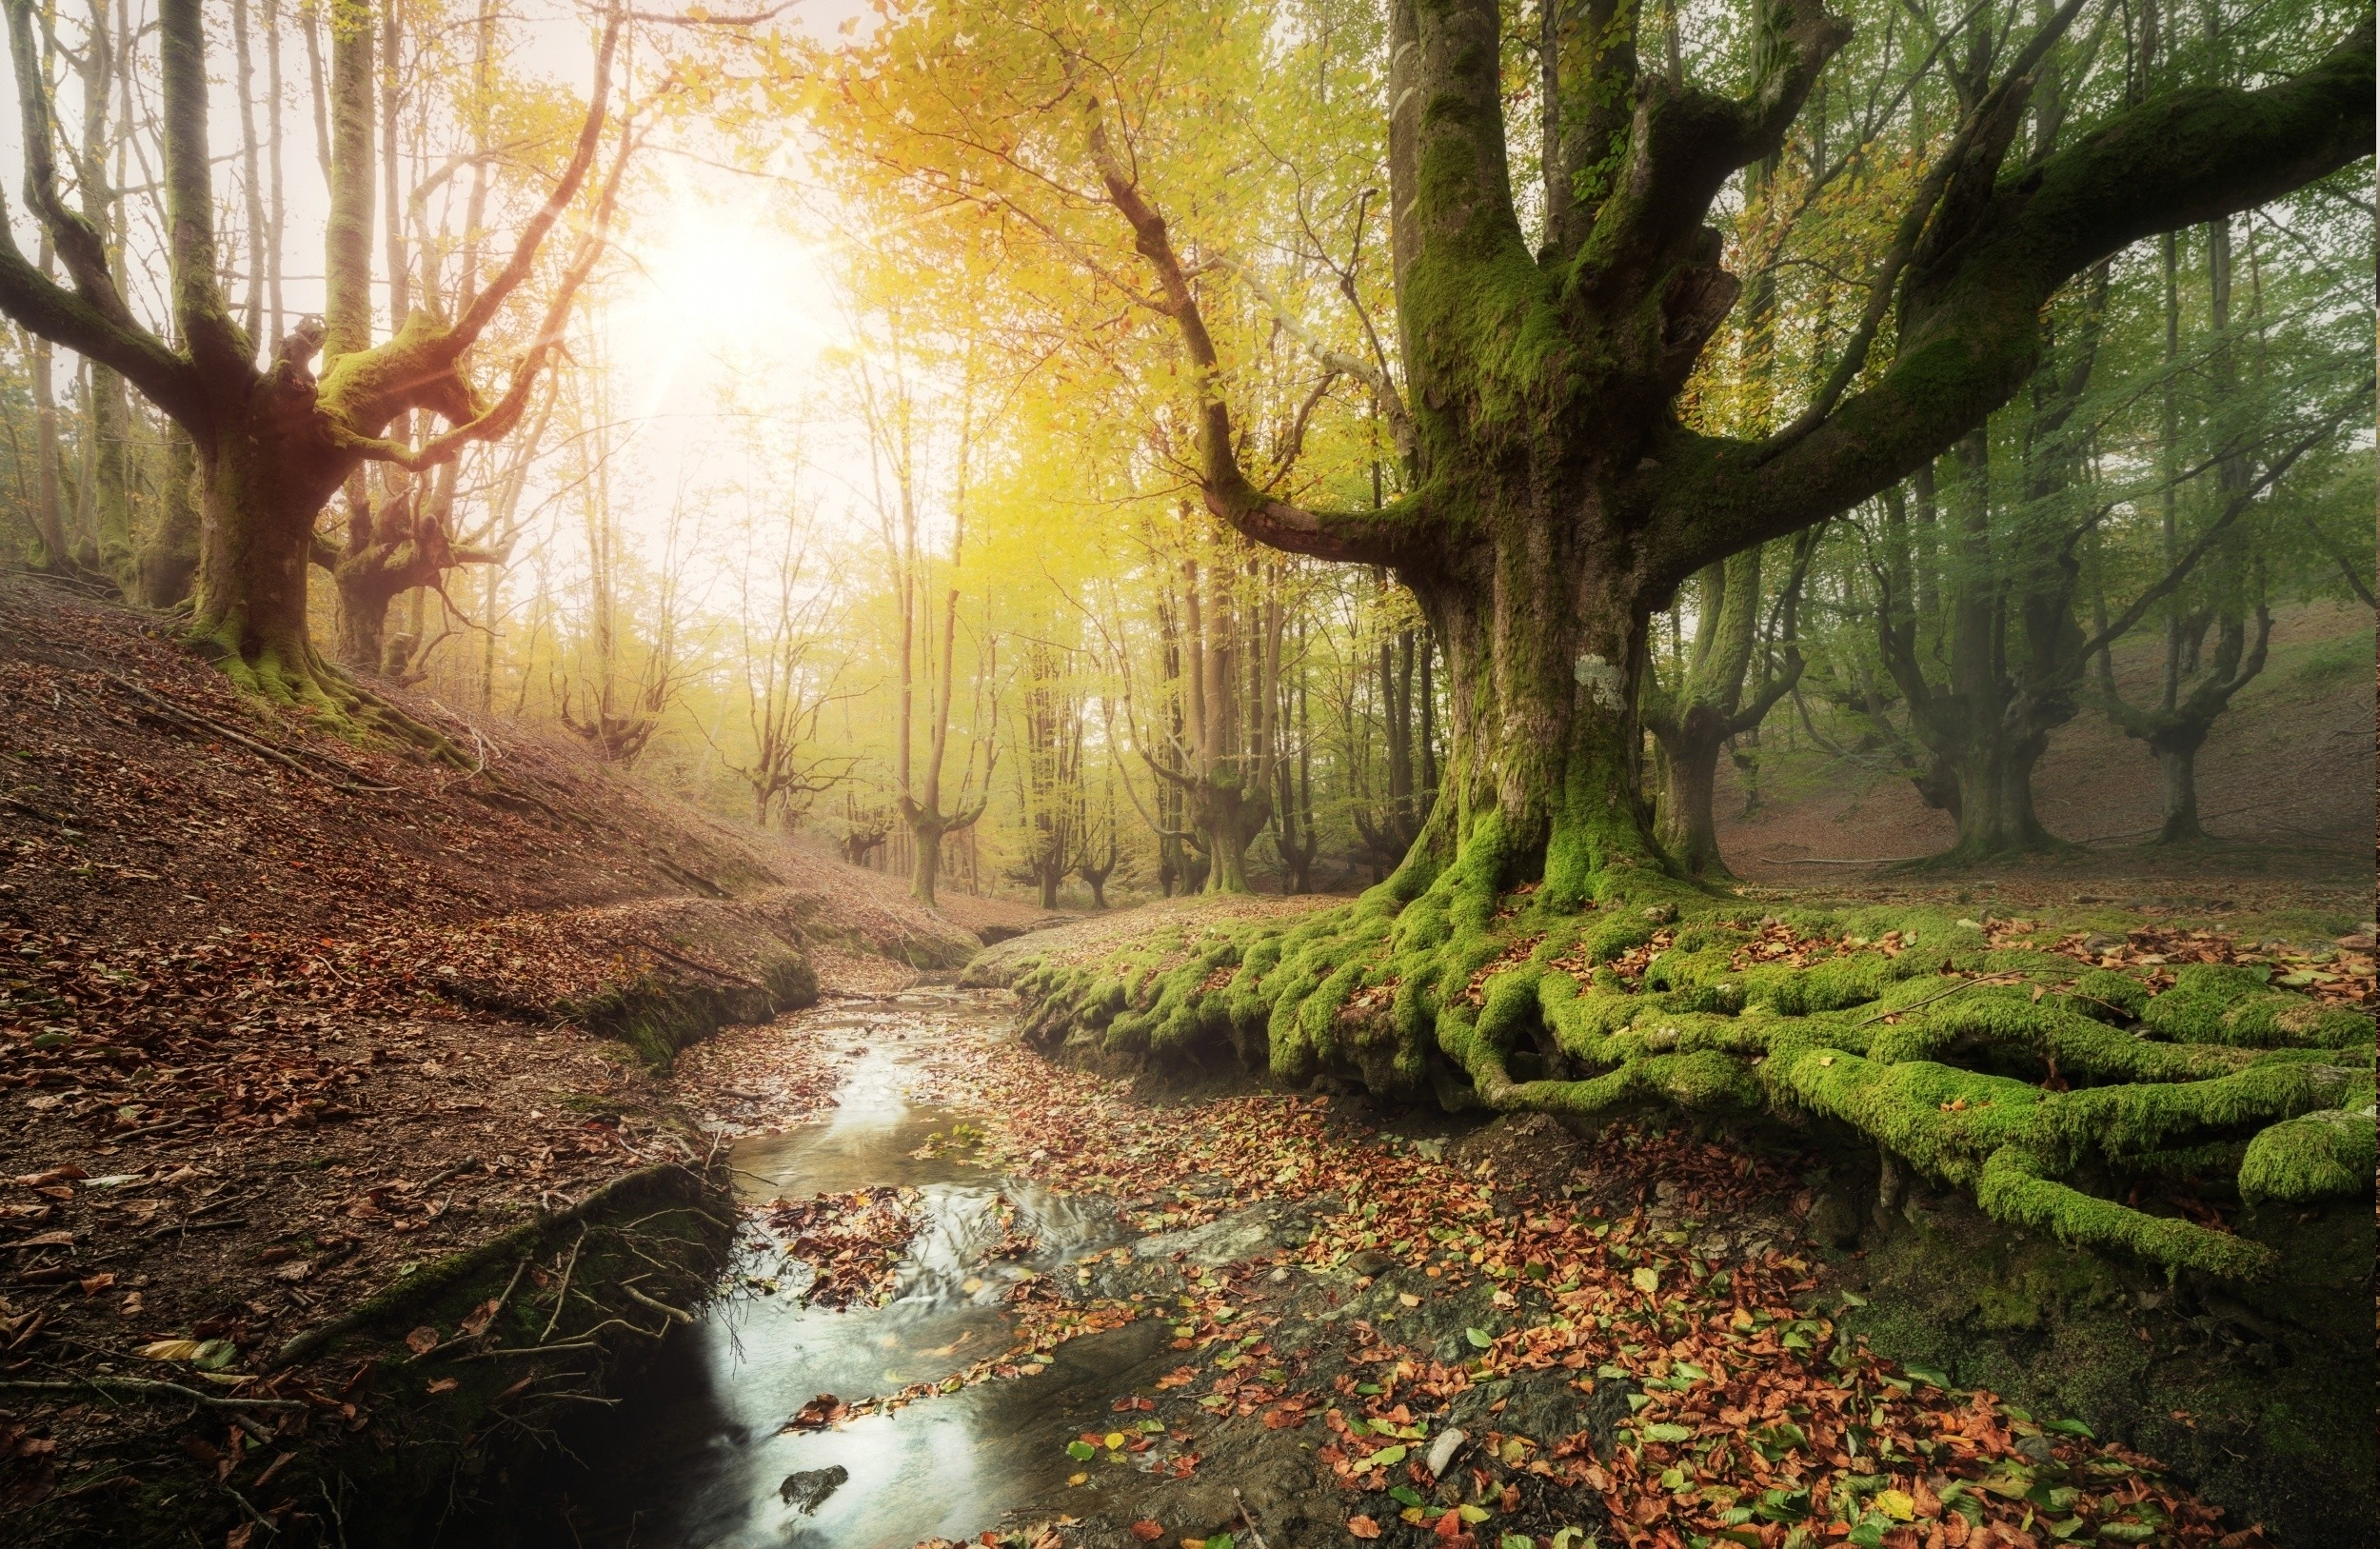 Fall Forest Wallpaper For Desktop Forest Creeks Moss Sunrise Leaves Trees Water Fall